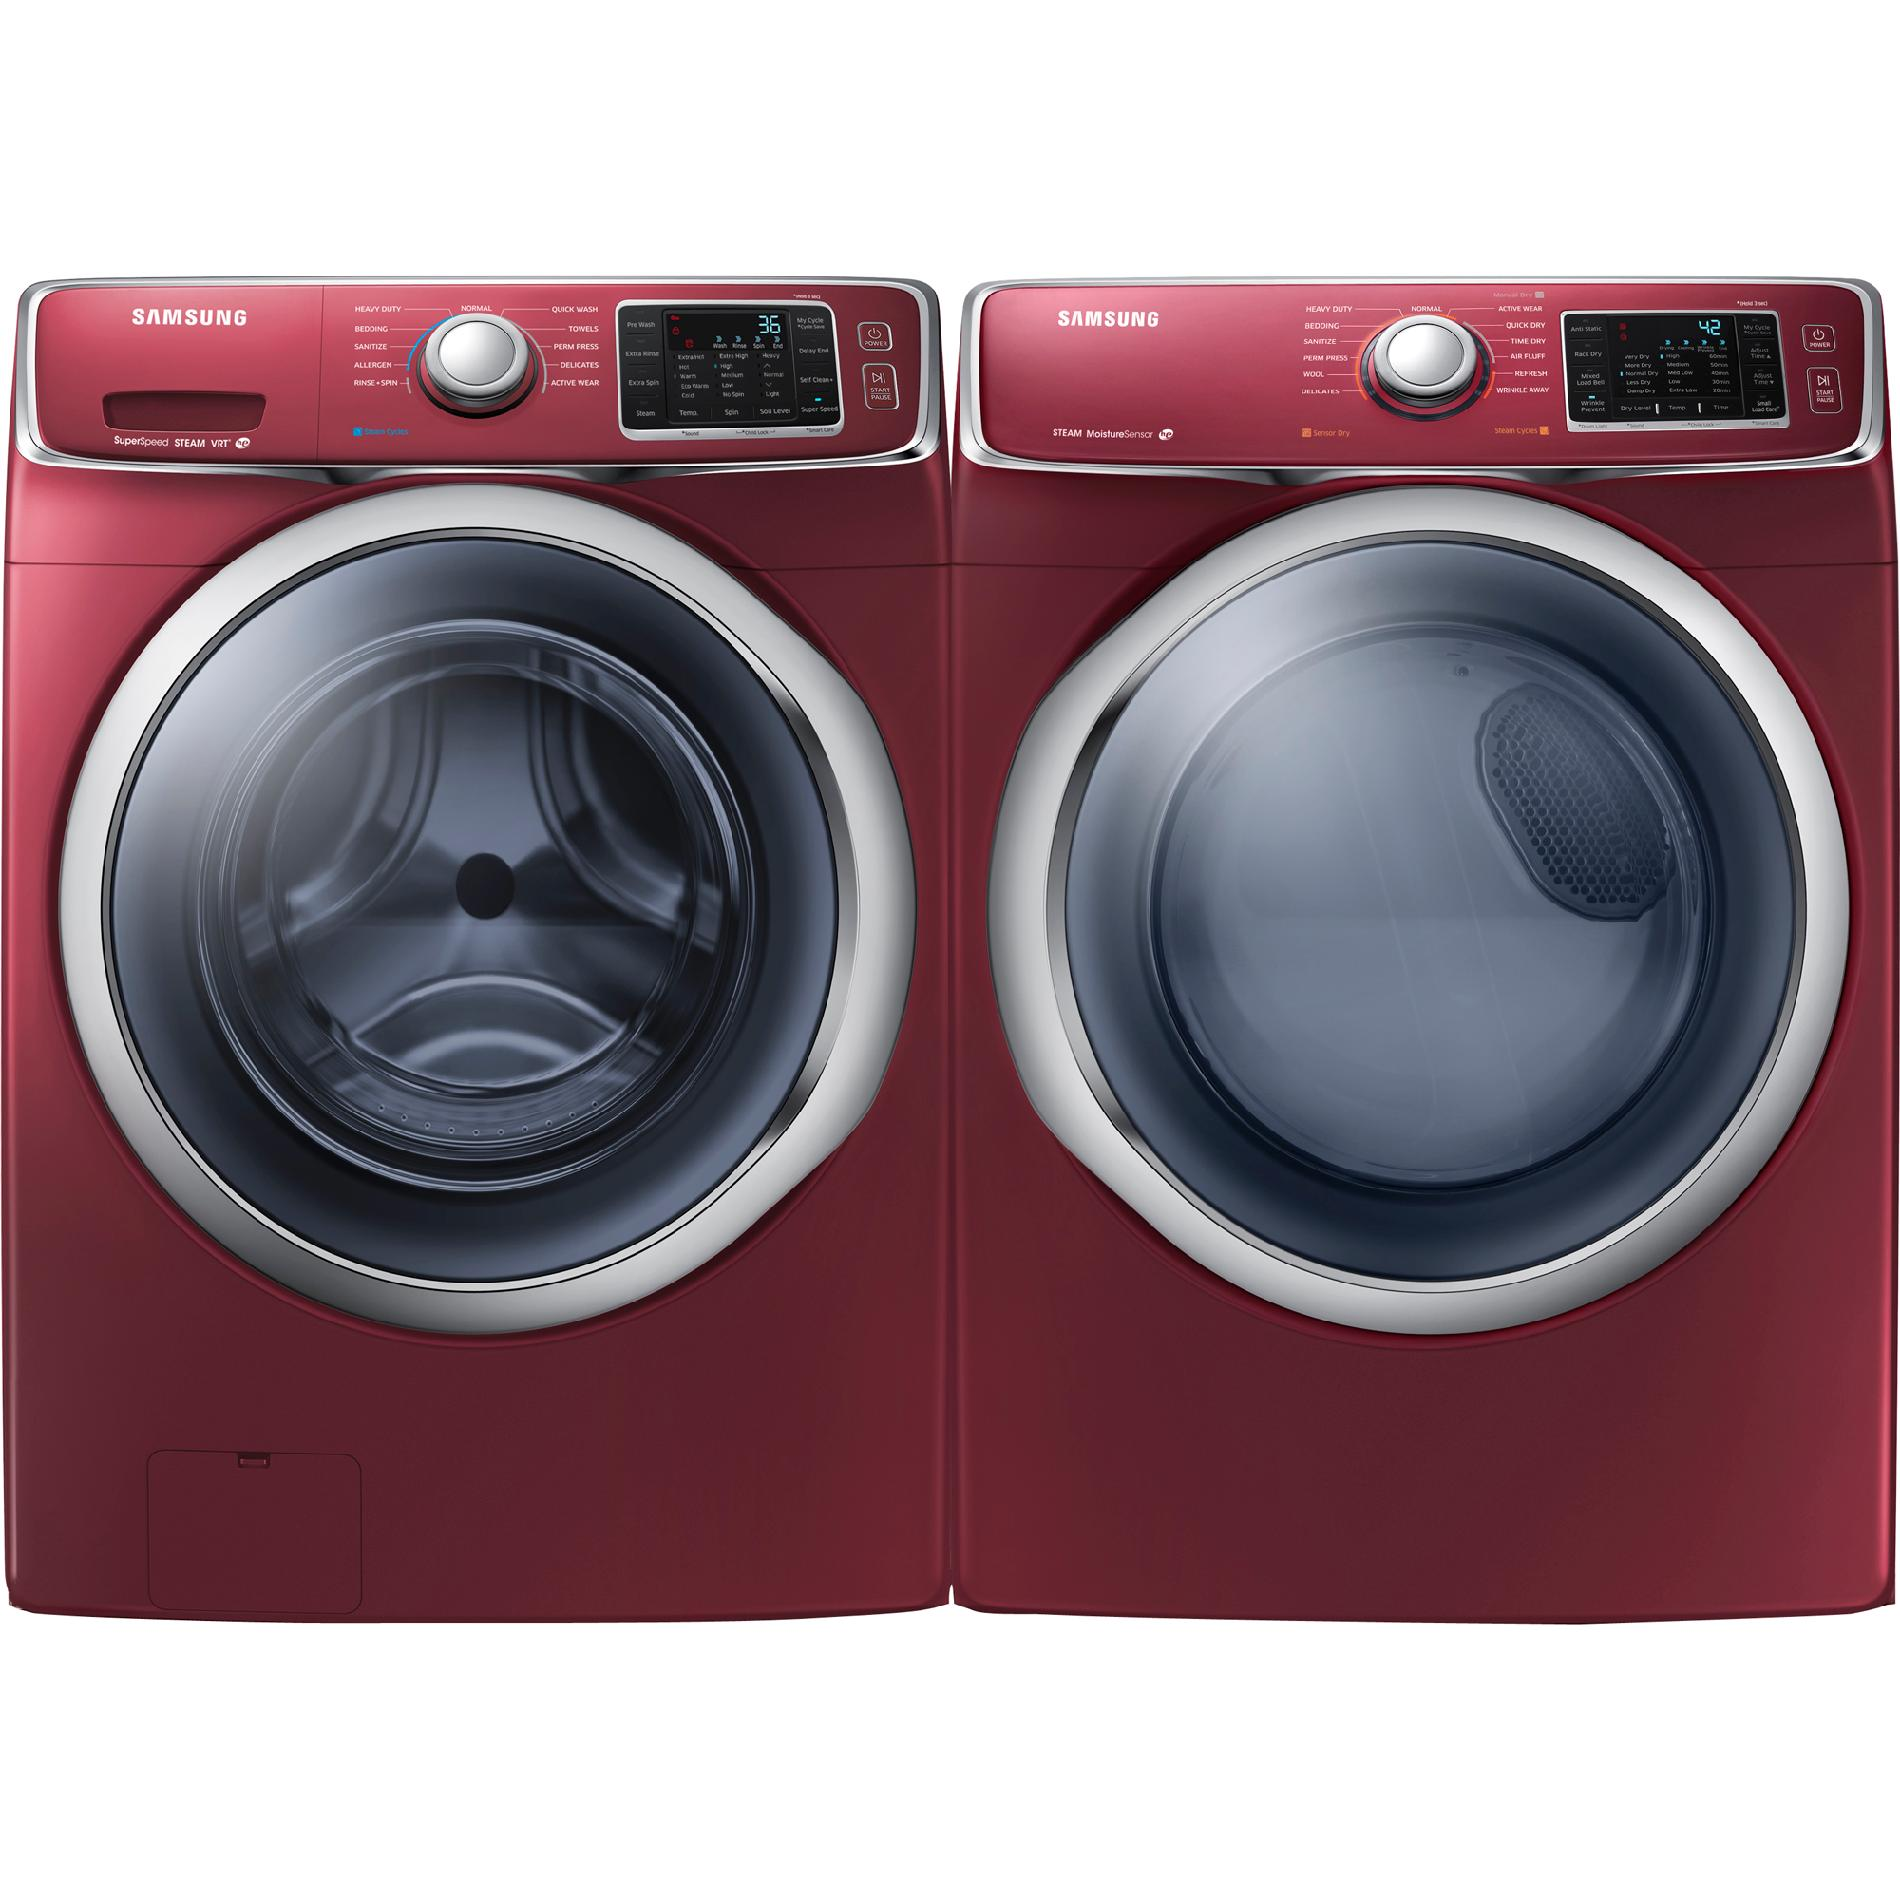 Samsung WF42H5400AF 4.2 cu. ft. Front-Load Washer - Merlot